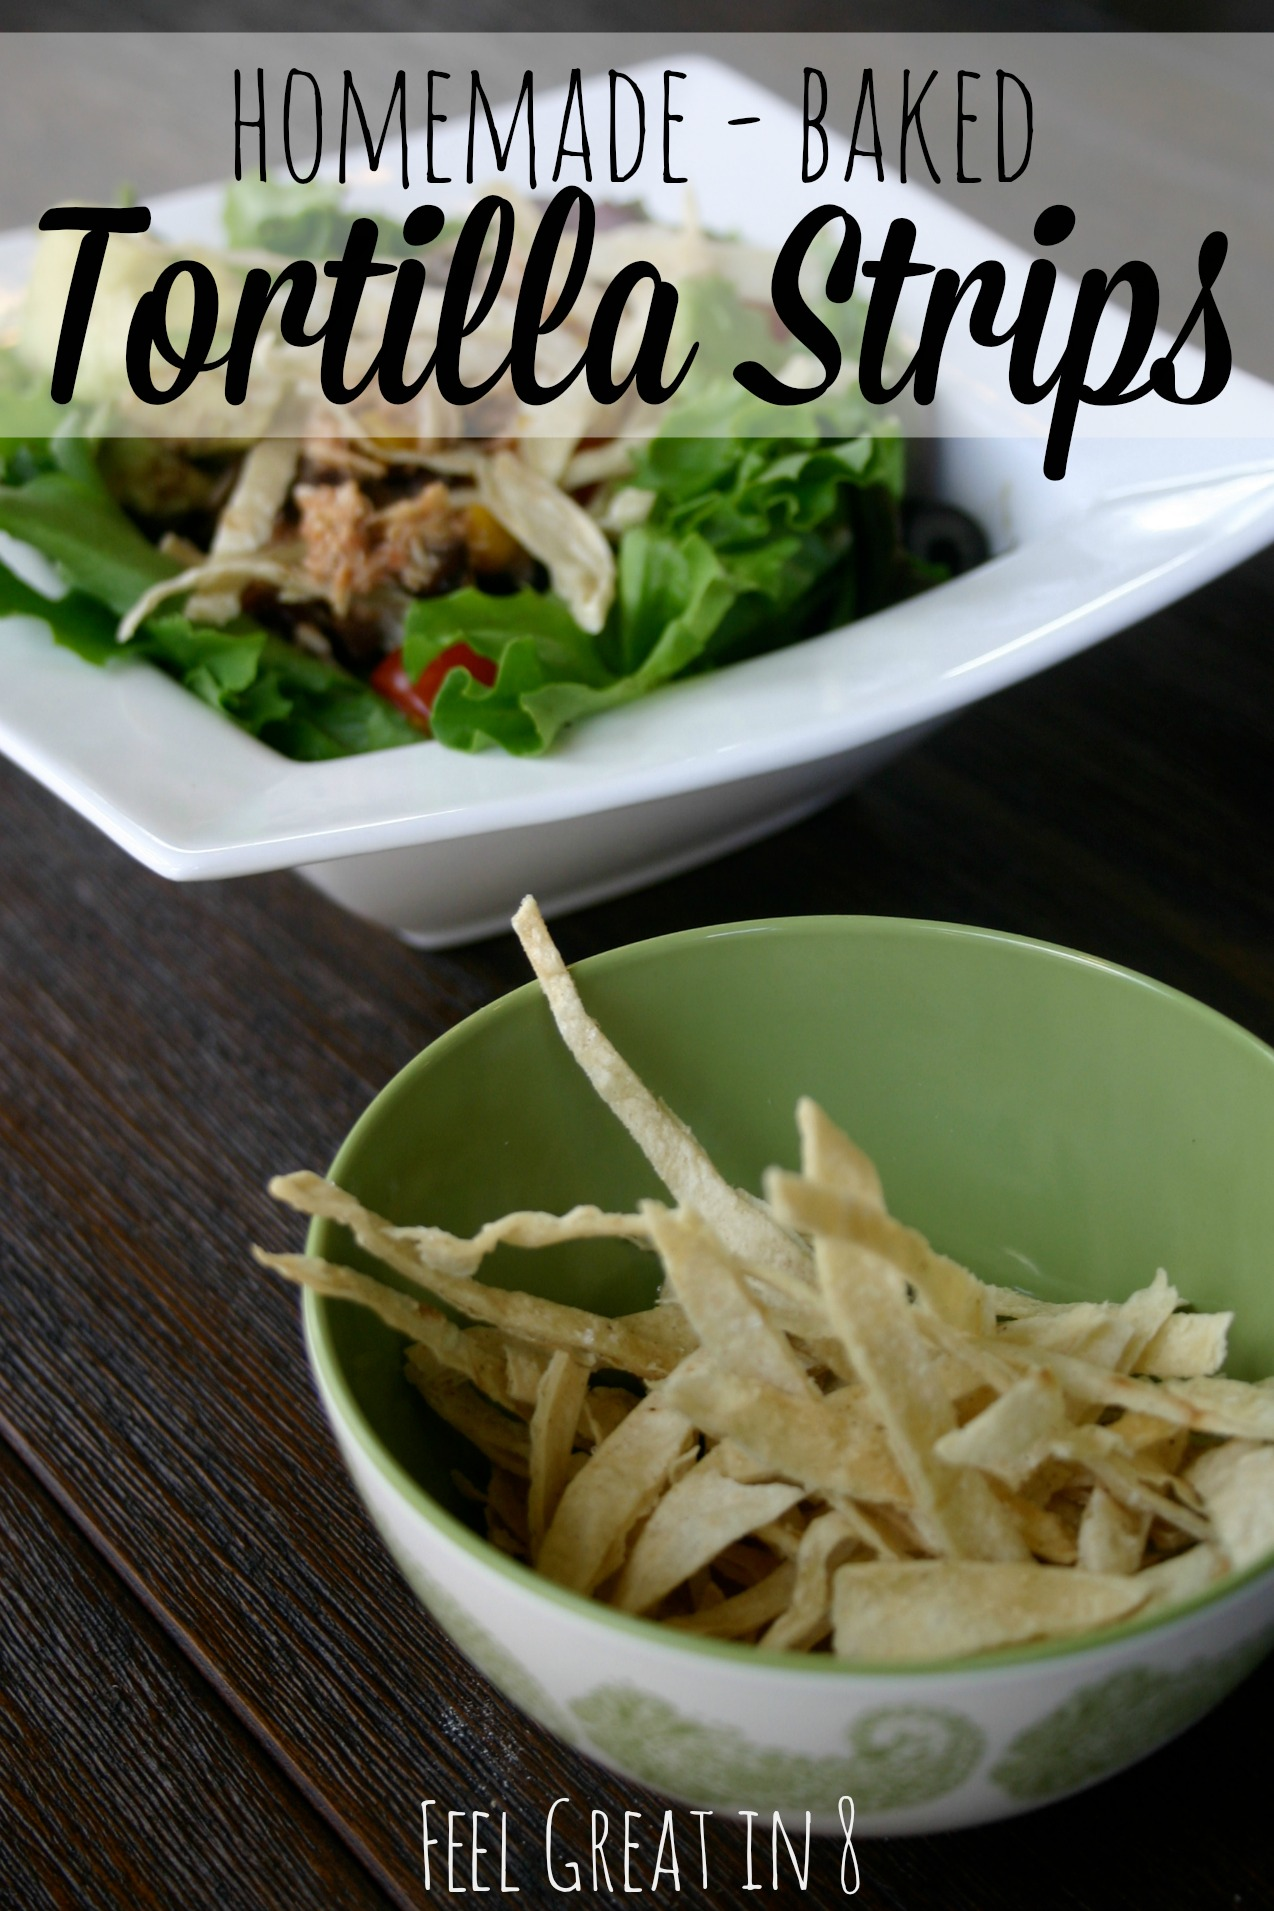 These homemade, baked tortilla strips are perfect for adding that salty crunch to salads and soups and they take just a few minutes to throw together. Feel Great in 8 #healthy #baked #recipe